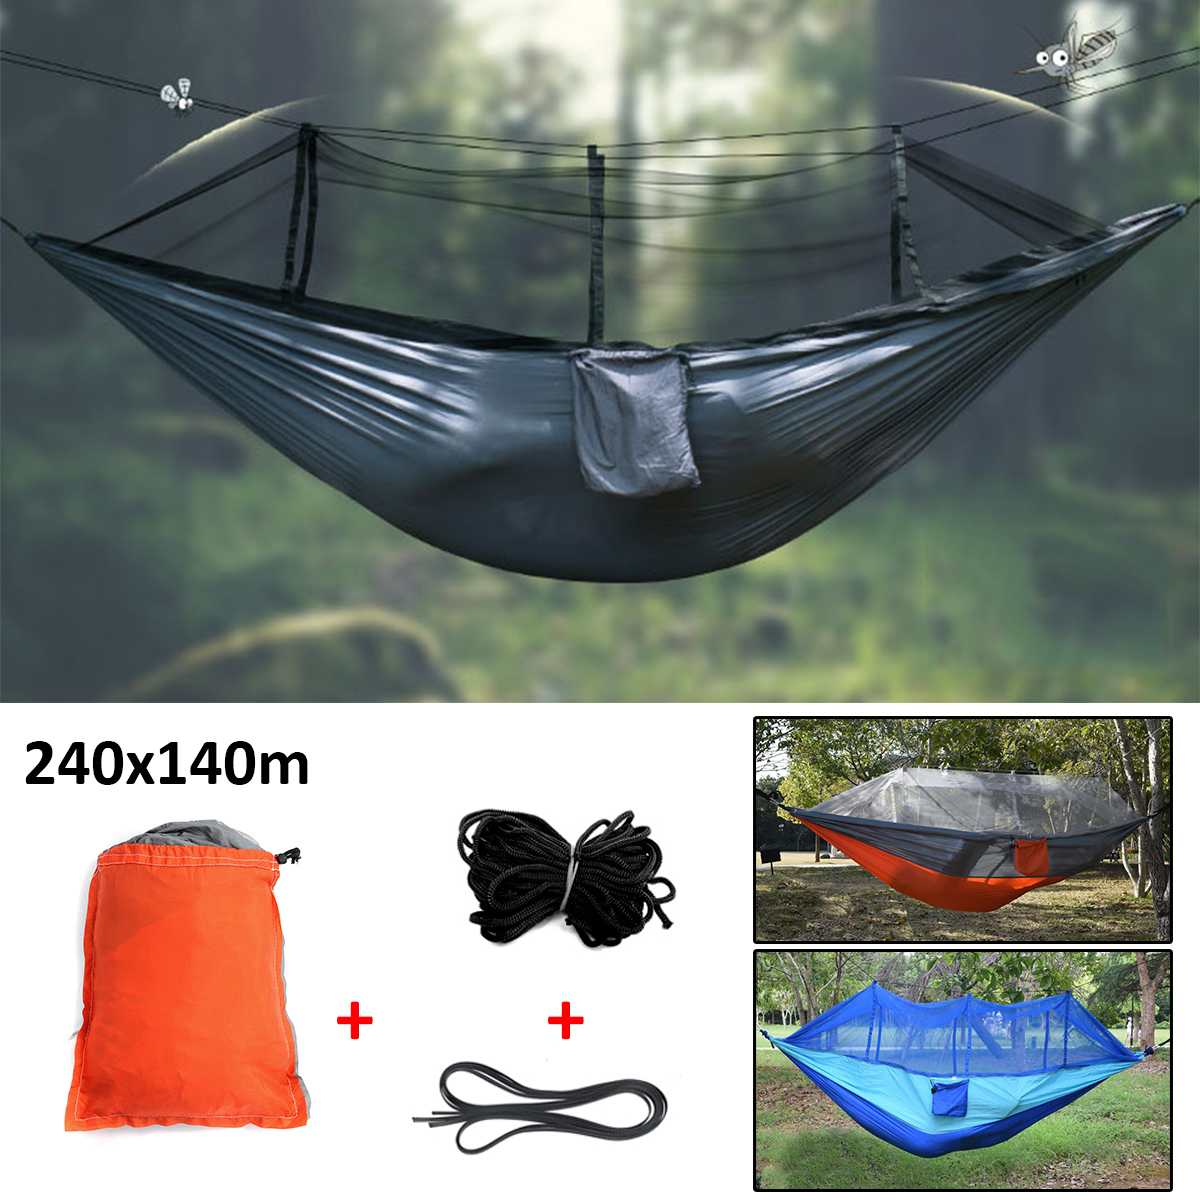 Outdoor Double 2 People Hammock Camping Tent Hanging Swing Bed With Mosquito Net Sleeping Outdoor Parachute HammocksOutdoor Double 2 People Hammock Camping Tent Hanging Swing Bed With Mosquito Net Sleeping Outdoor Parachute Hammocks